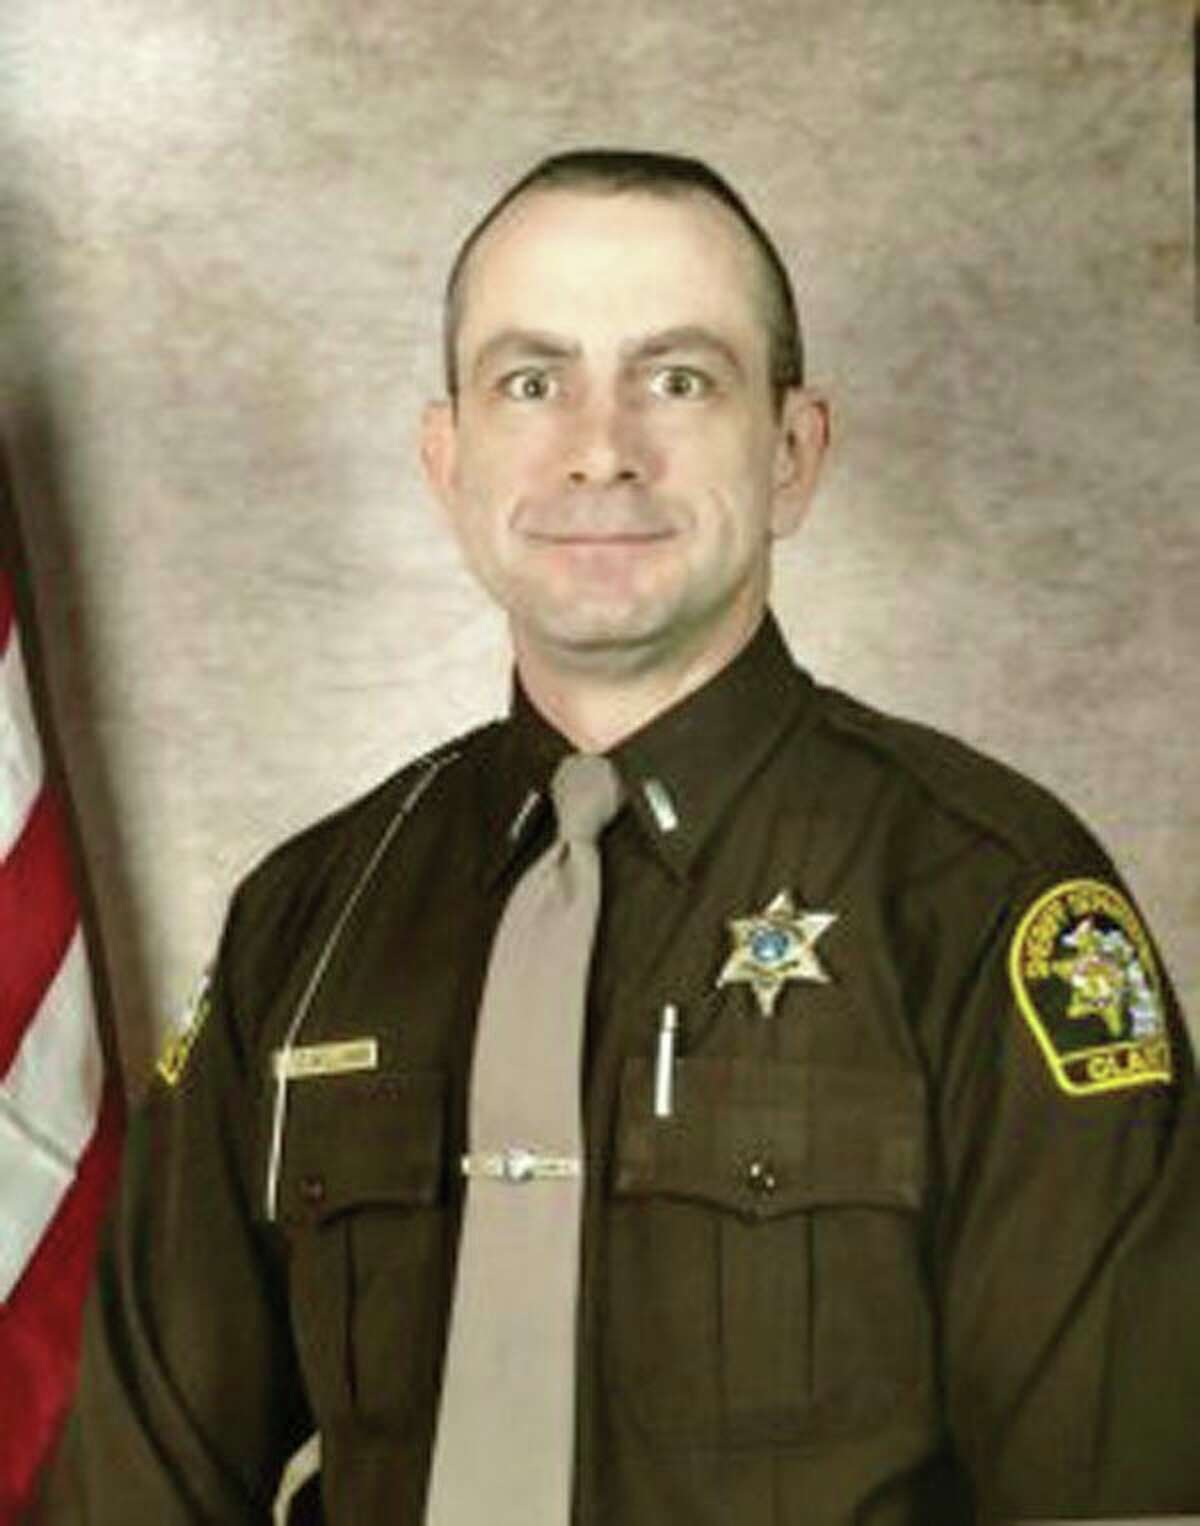 Osceola County Sheriff Ed Williams has been hosting weekly Facebook Live chats at noon on Friday to share information and answer questions from the community. (Courtesy photo)